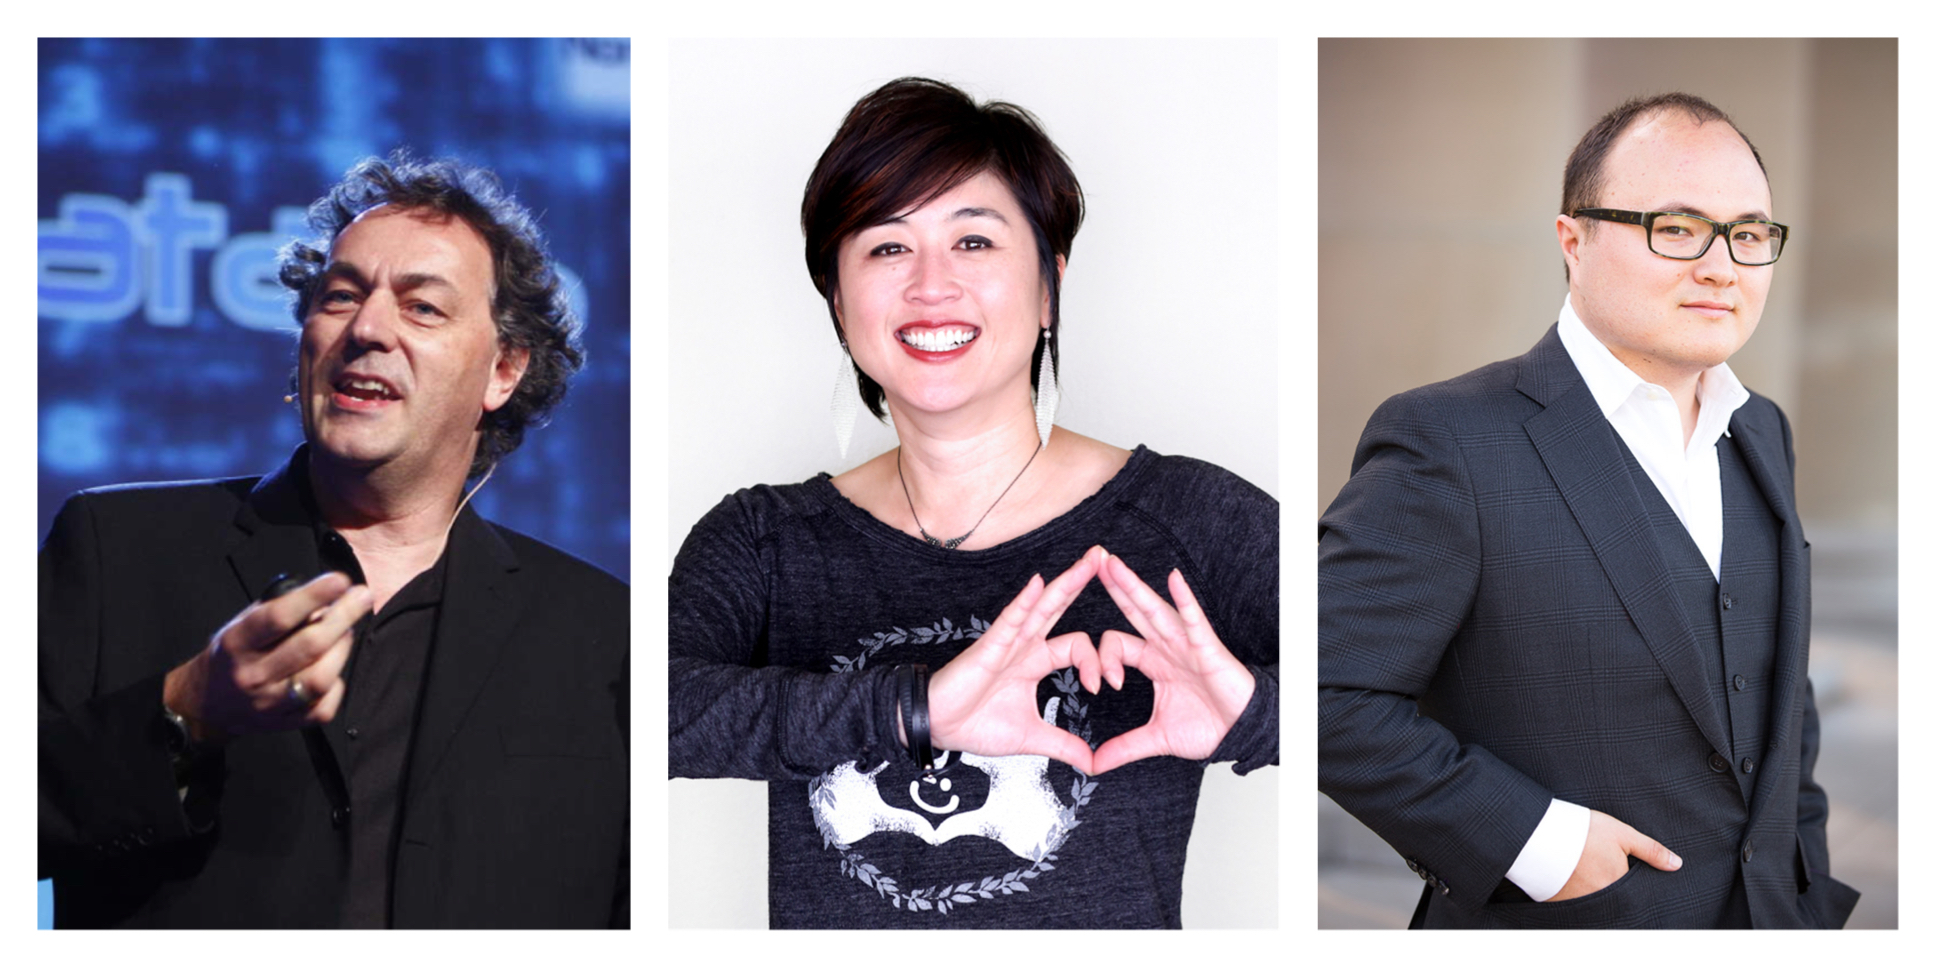 Gerd Leonhard, Jenn Lim and Ben Parr are the featured speakers at the upcoming annual conference for the International SalonSpa Business Network.